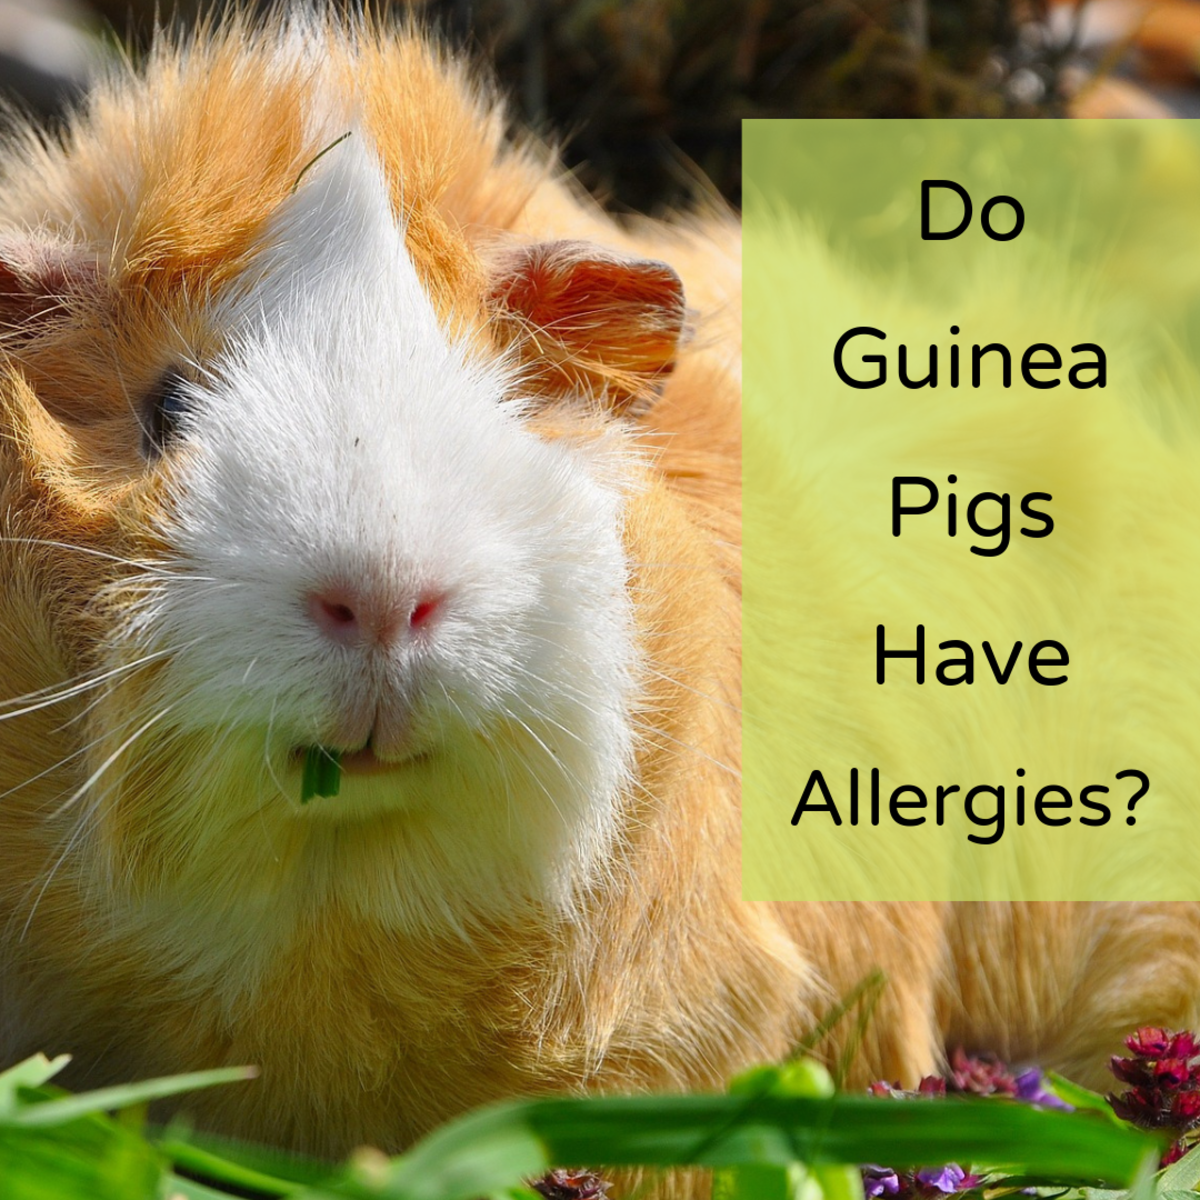 Make sure you know which foods your guinea pig should not eat and which substances it should not be exposed to.